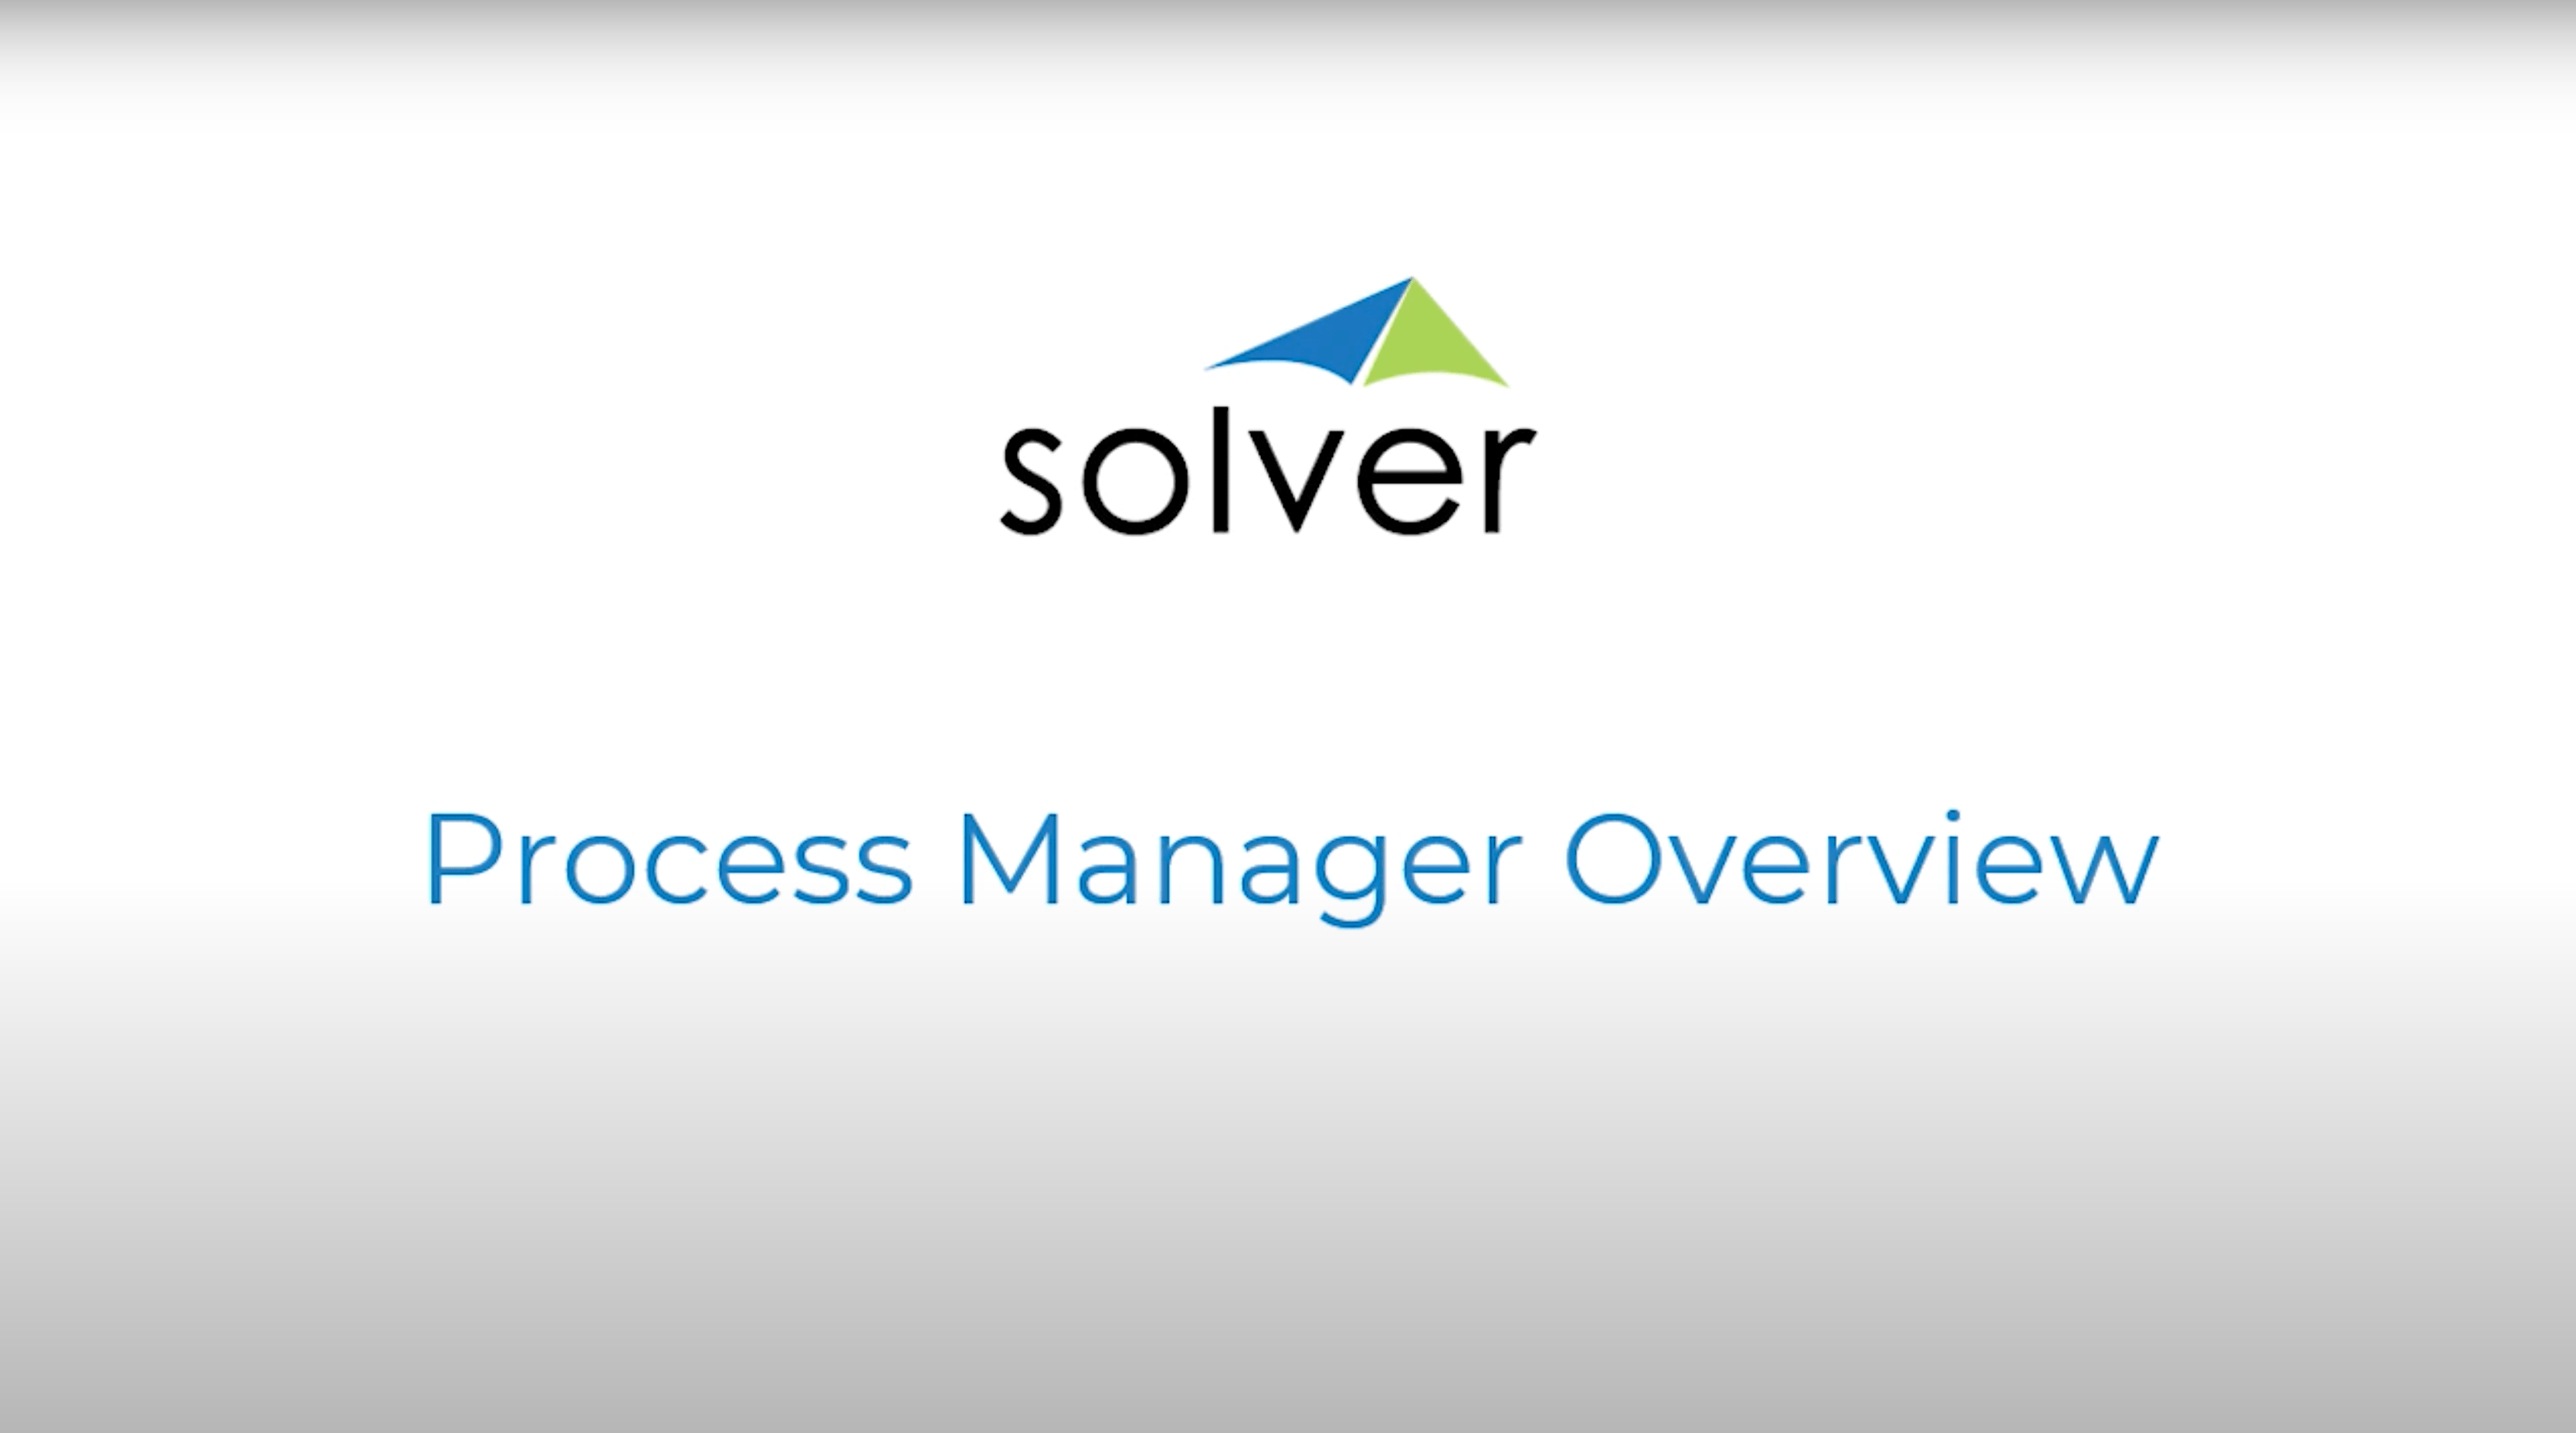 Process Manager Overview